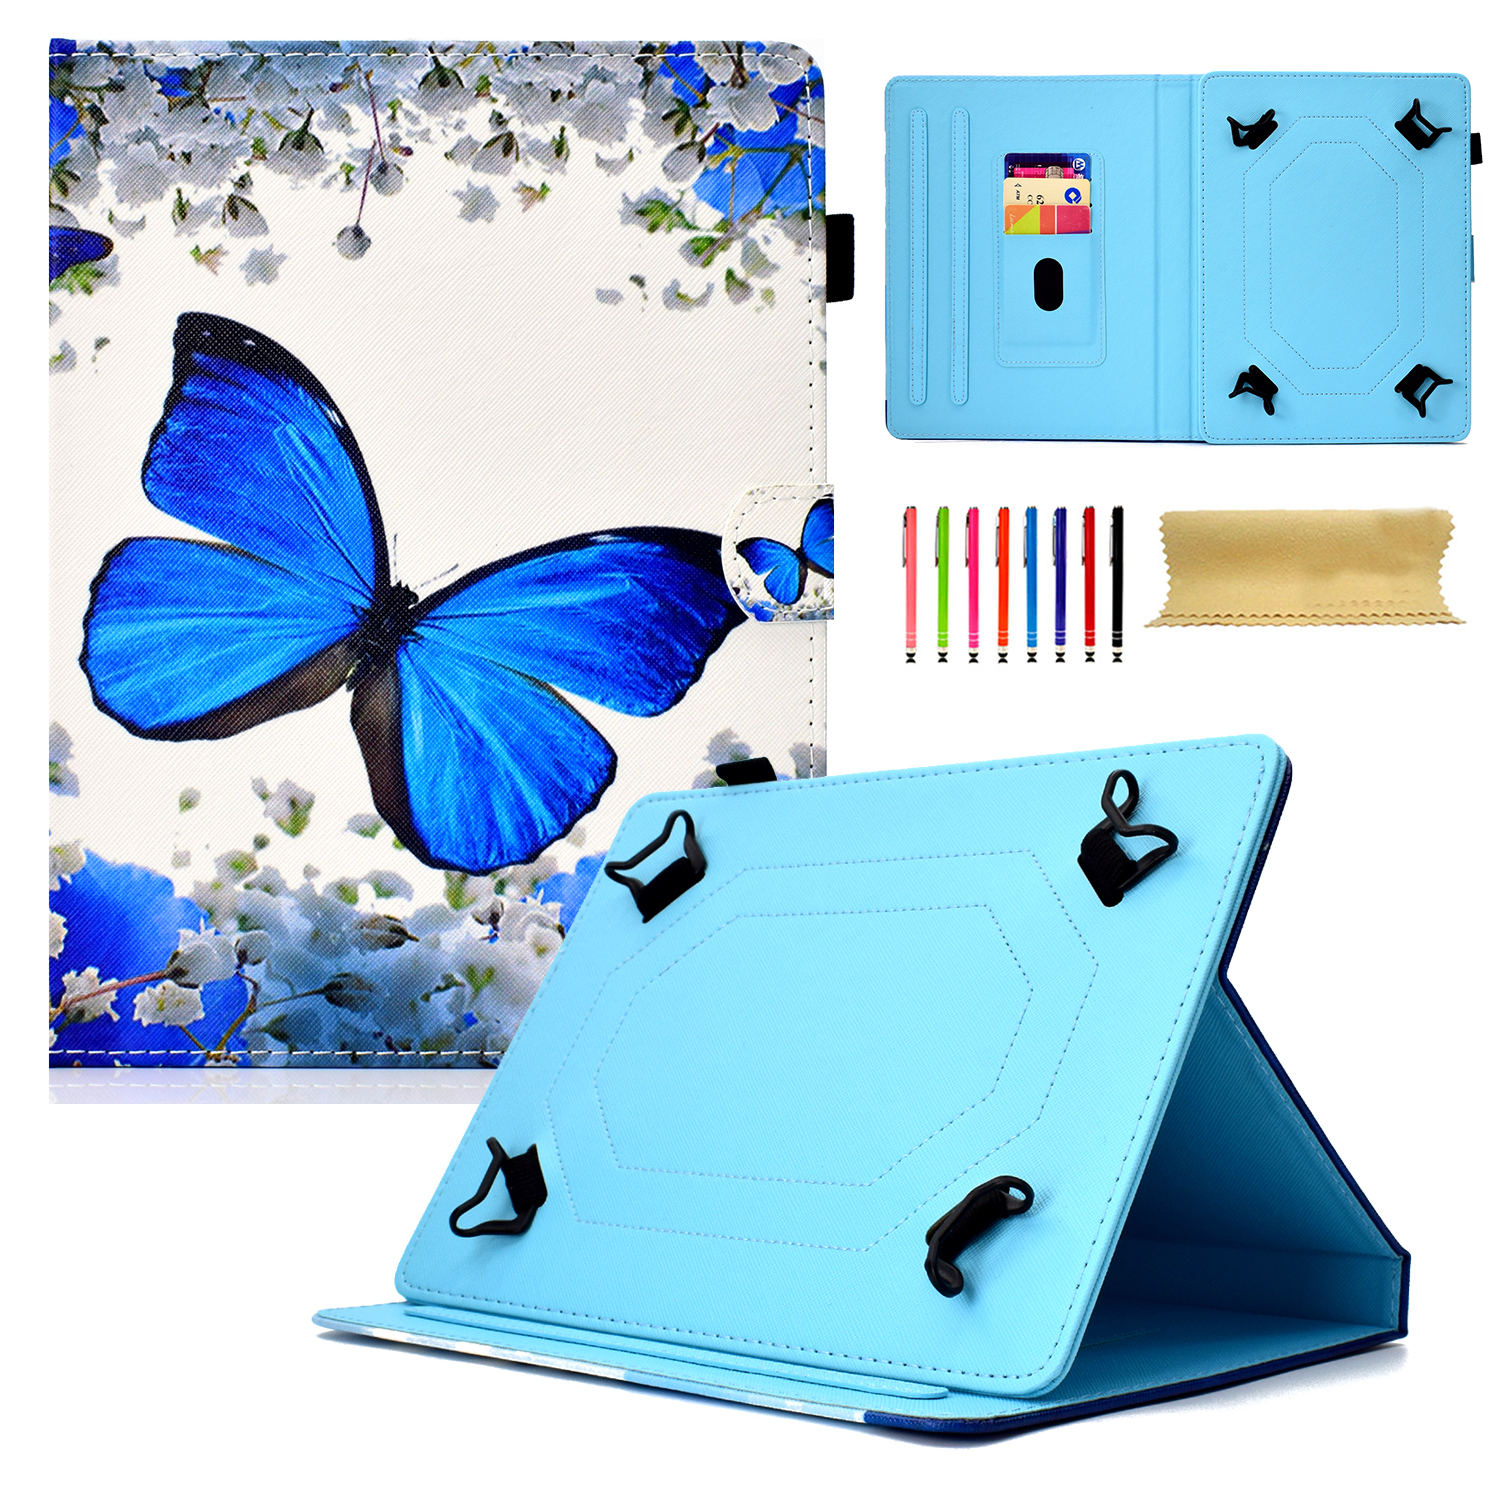 "Goodest Universal 8 Inch Tablet Case, Slim Fit Folio Protective Stand Wallet Cover for 7.5-8.5"" Tablet 8"" Touchscreen/iPad Mini/Galaxy Tab A/Fire HD 8/RCA/Chrome Nextbook iView, Floral Butterfly"